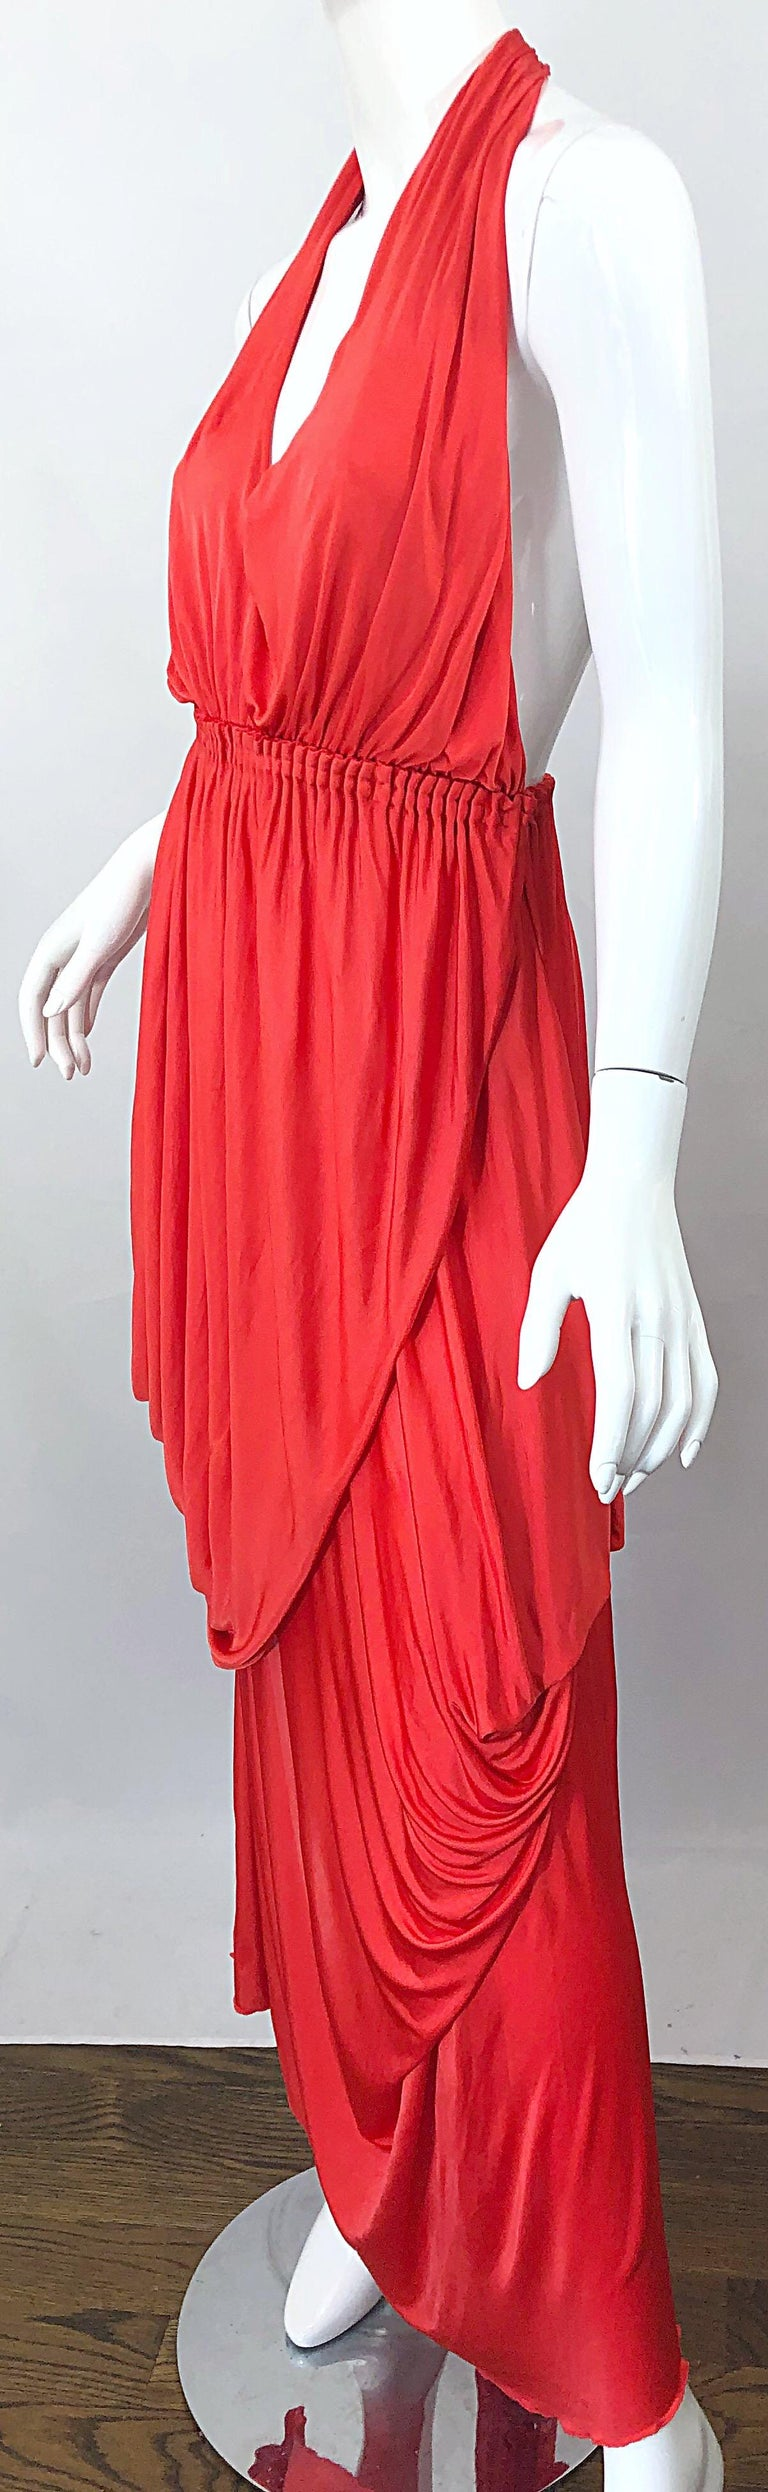 Vintage Halston Coral Silk Jersey Plunging Asymmetrical Hem Backless Gown Dress For Sale 1